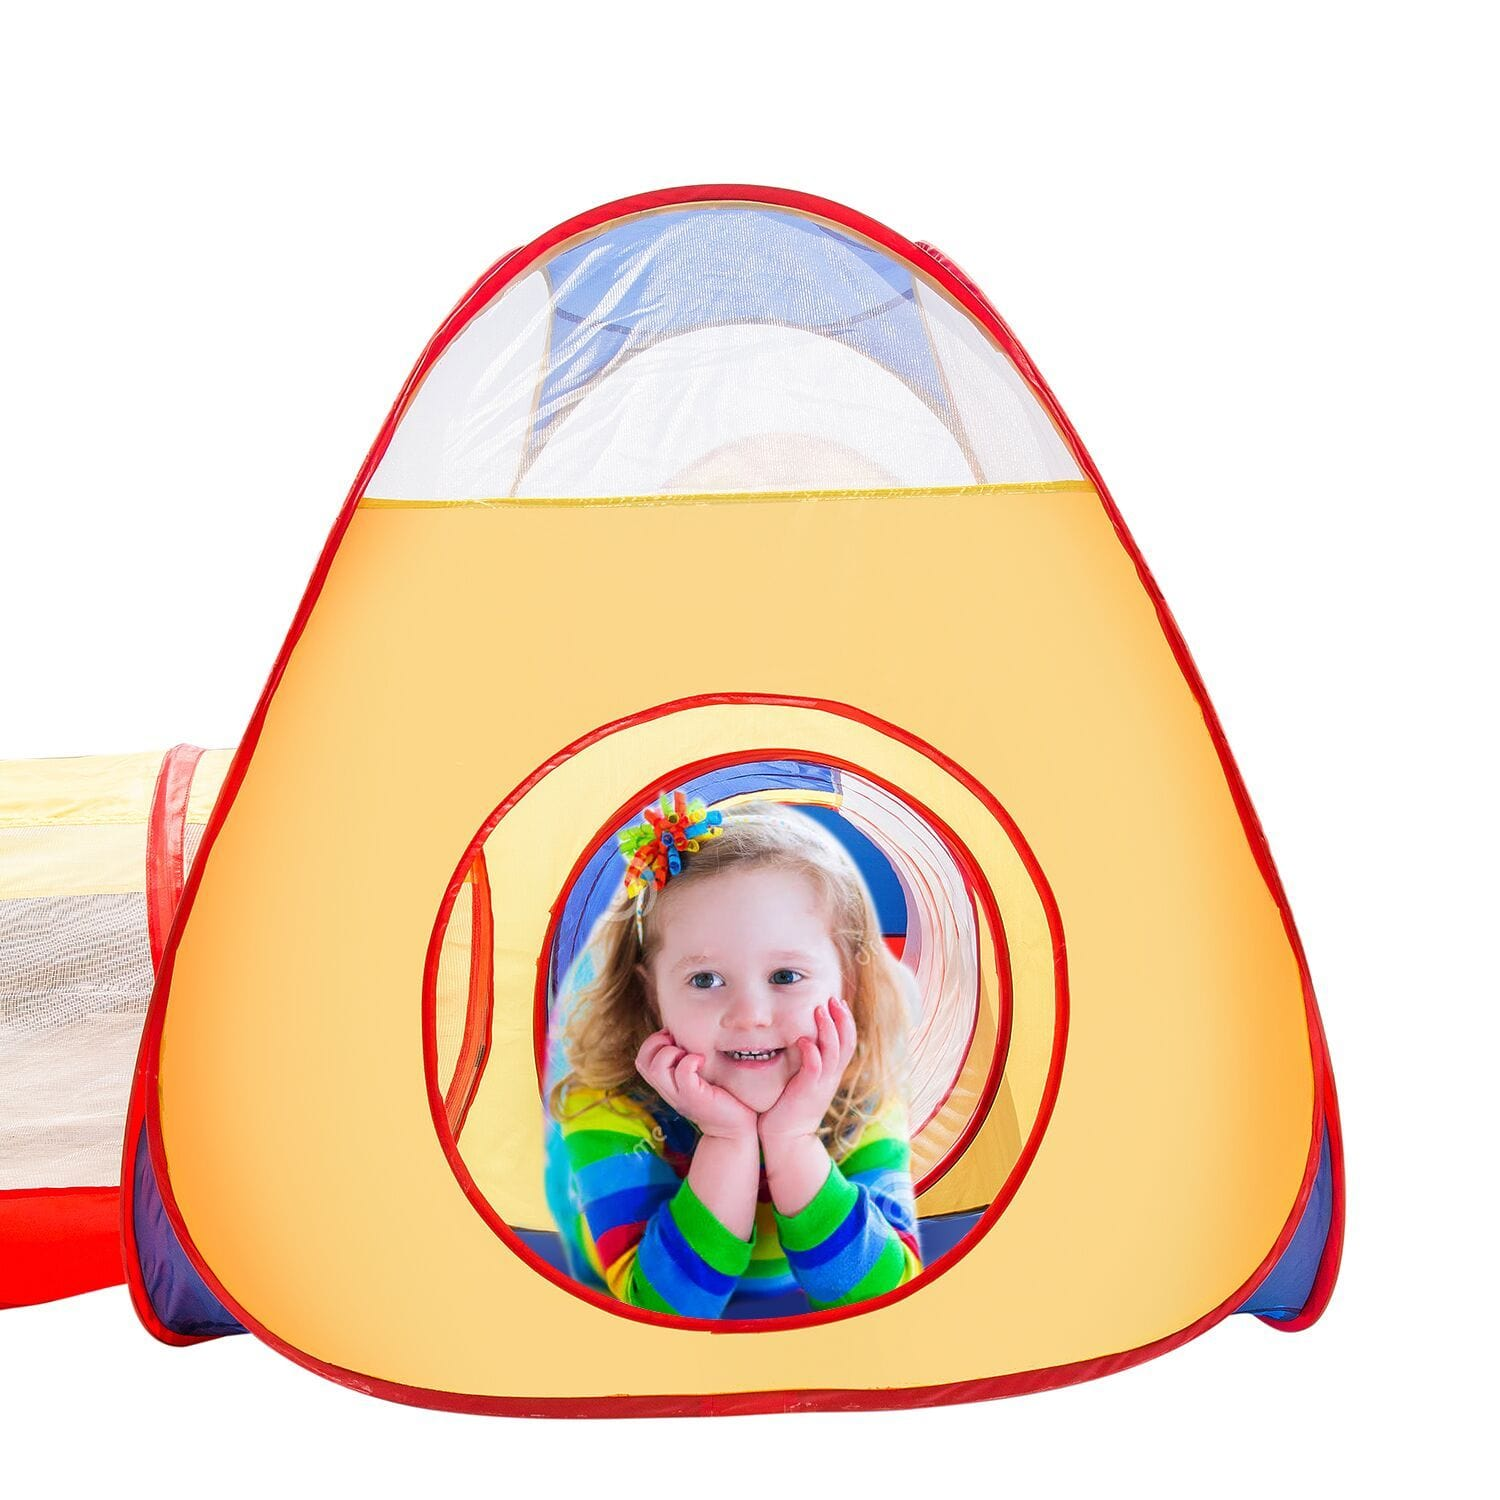 ... Extra Large Kid Tent iCorer 4pc Pop Up Children Play Tent w/ 2 Crawl Tunnels ...  sc 1 st  icorer & Extra Large Kid Tent iCorer 4pc Pop Up Children Play Tent w/ 2 Crawl ...